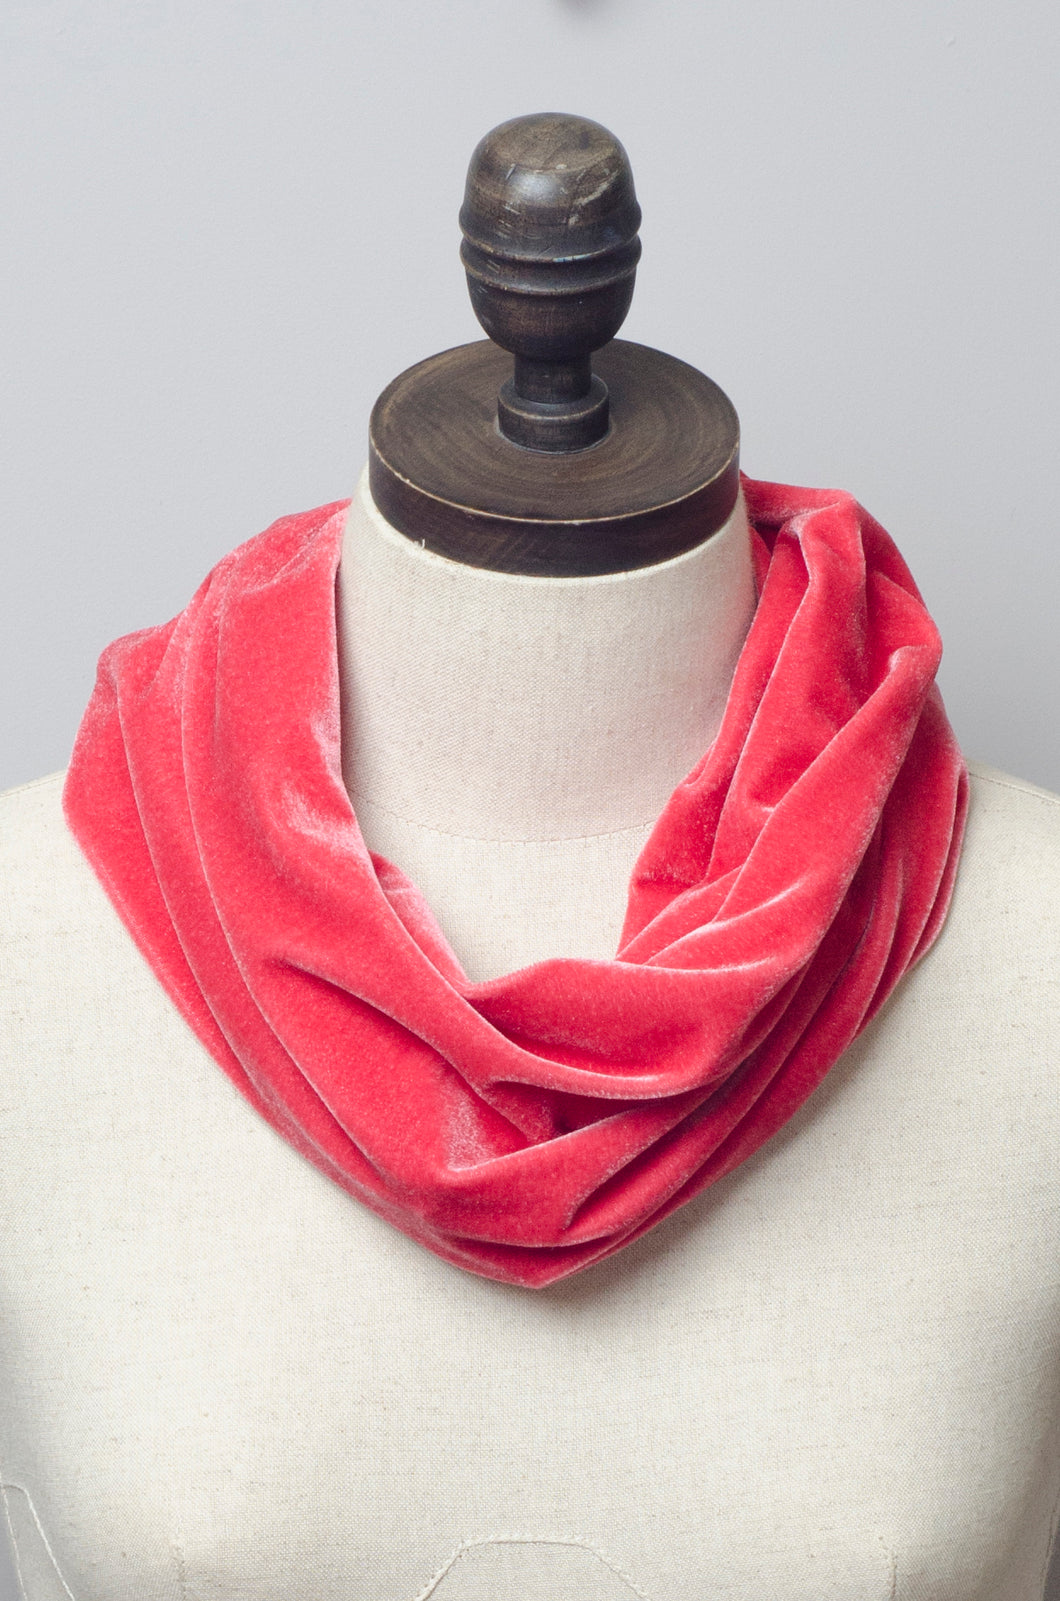 Velvet Cowl in Salmon - Accessories - Megan Crook